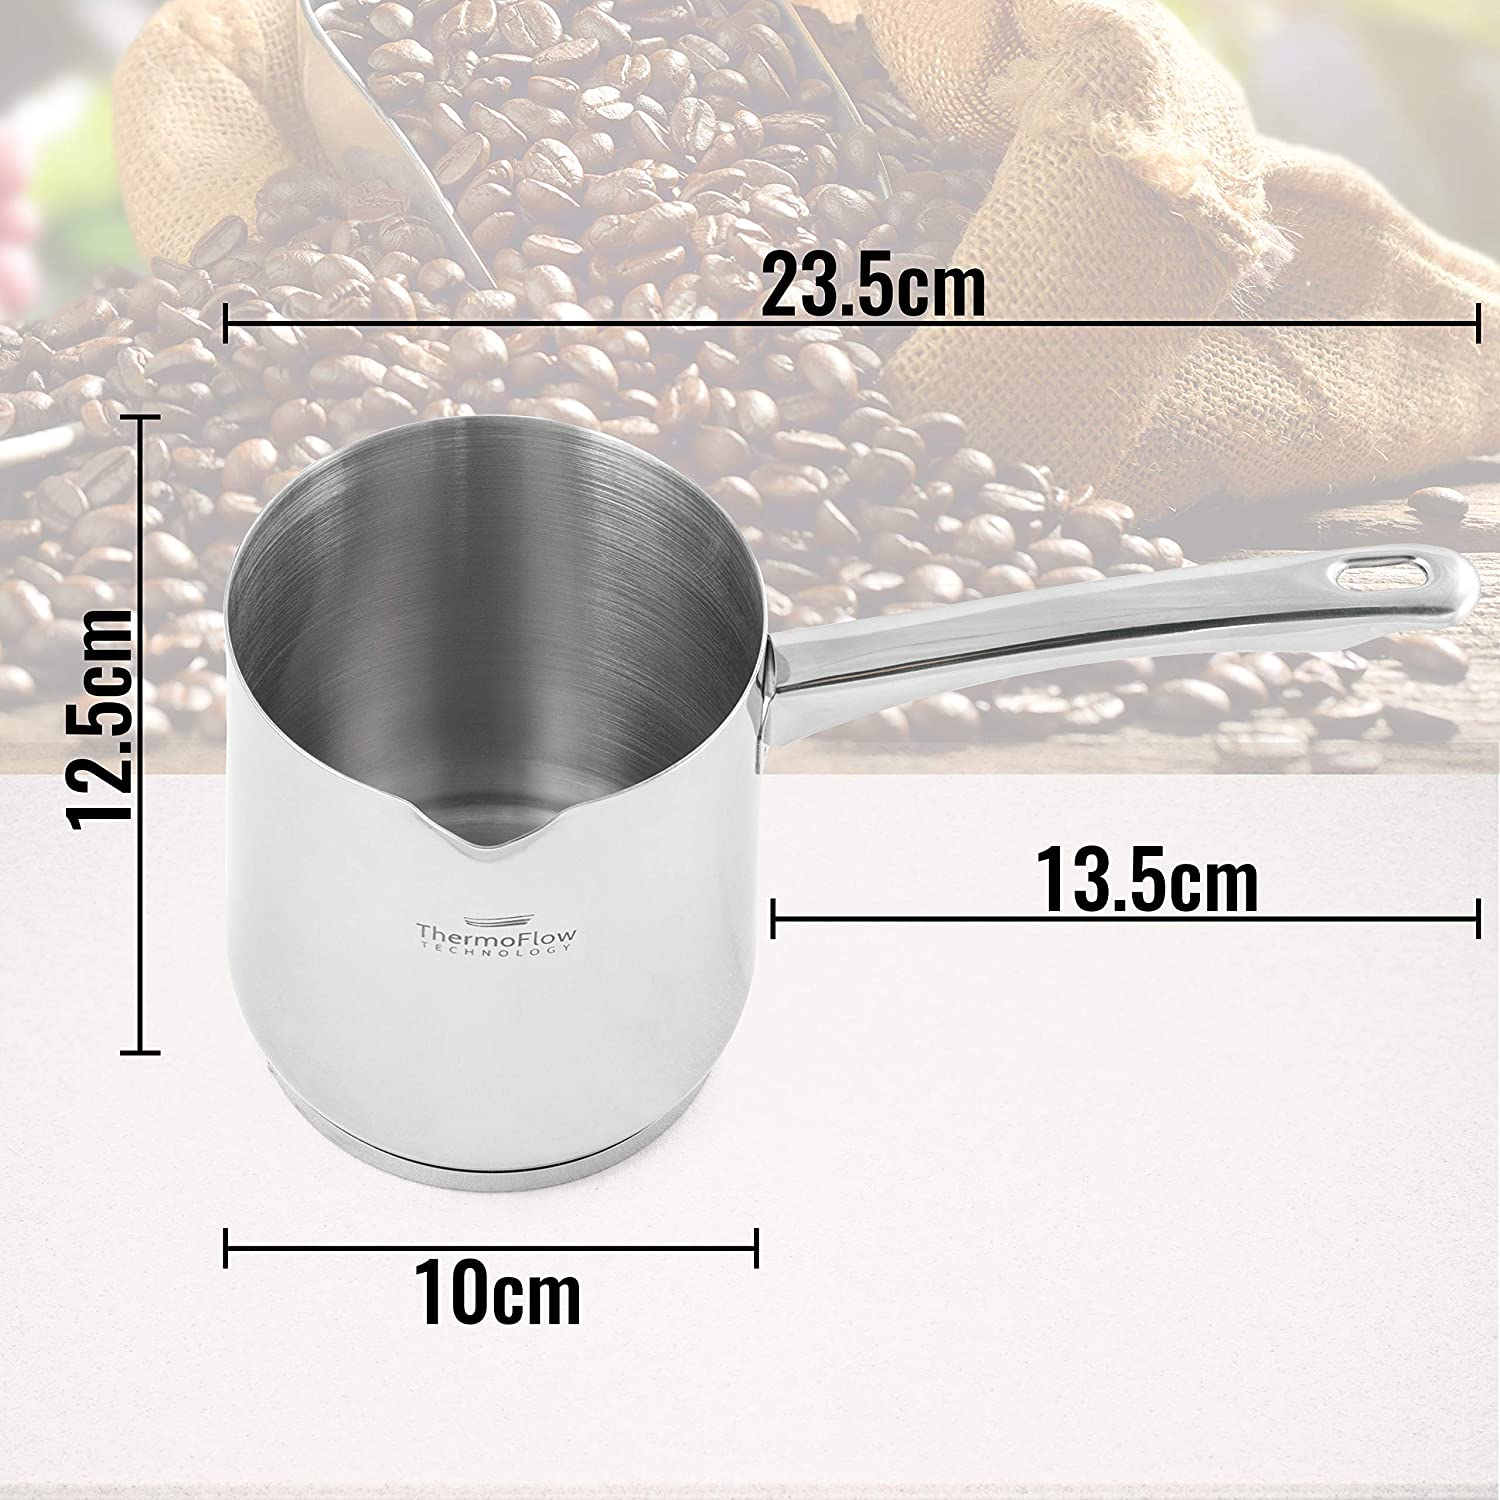 Rosmarino Stainless Steel Turkish Coffee Pot 700 ml Vitapur